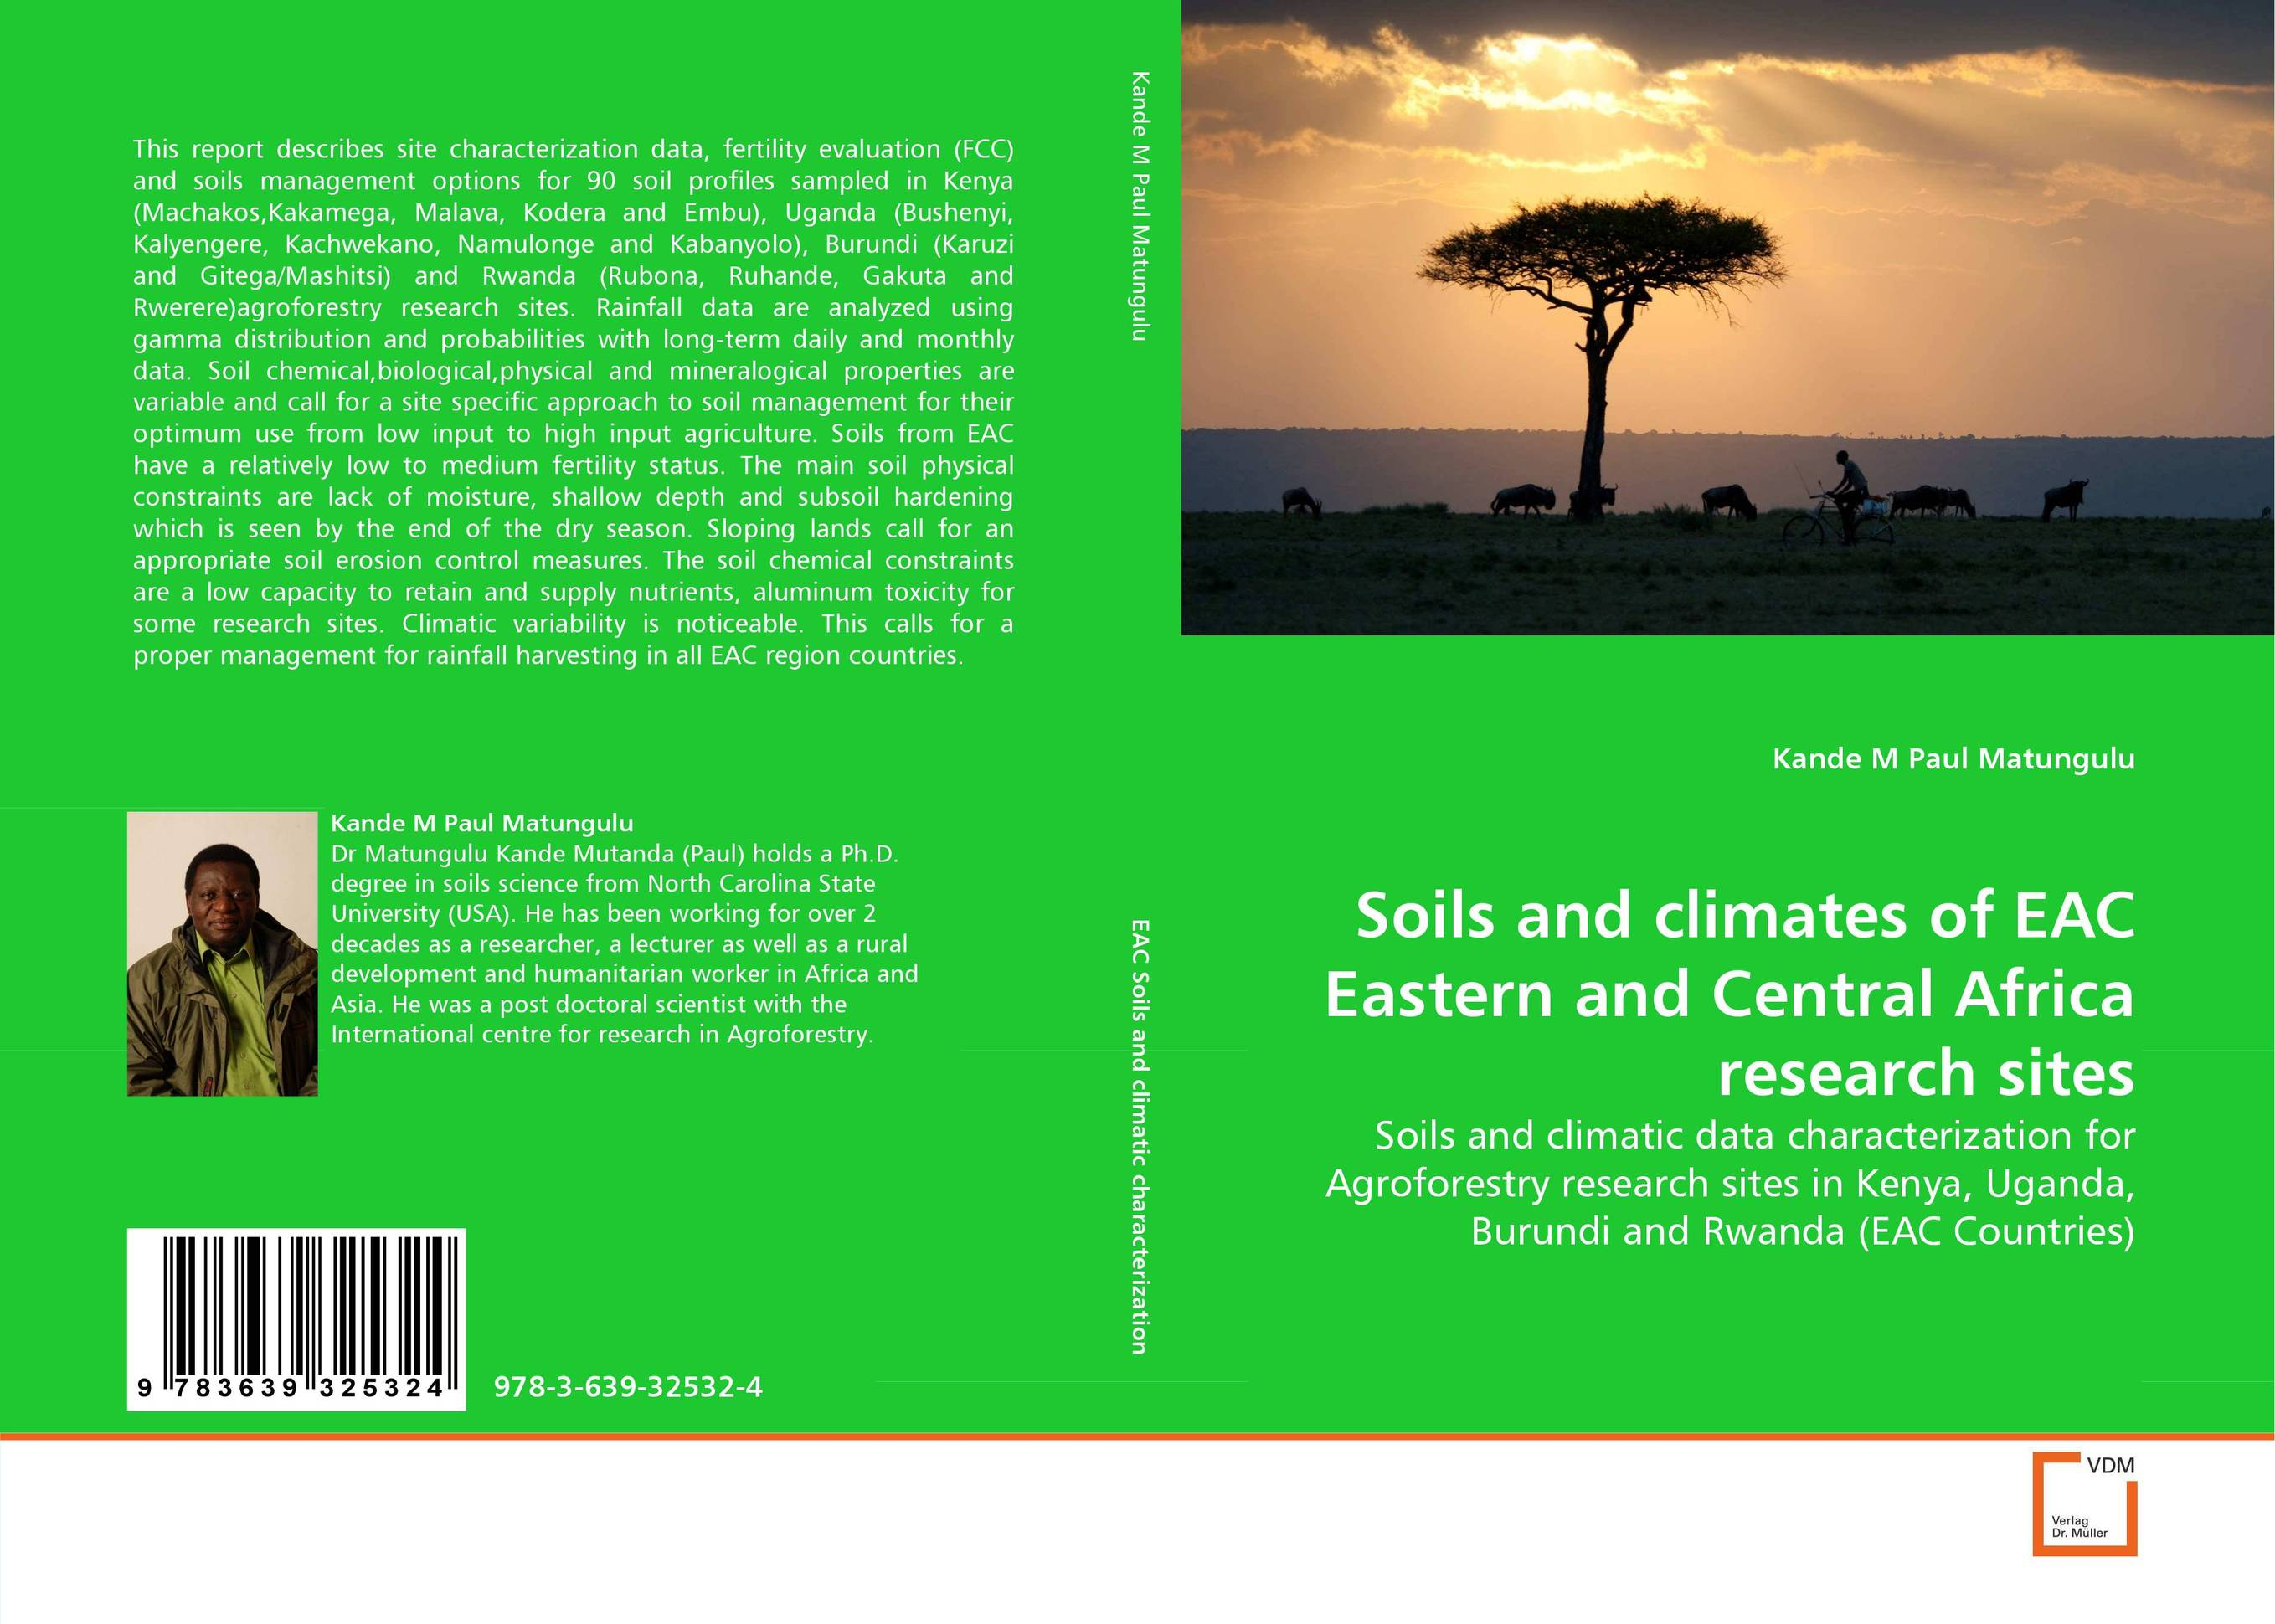 Soils and climates of EAC Eastern and Central Africa research sites evaluation of library web sites of select institute of management